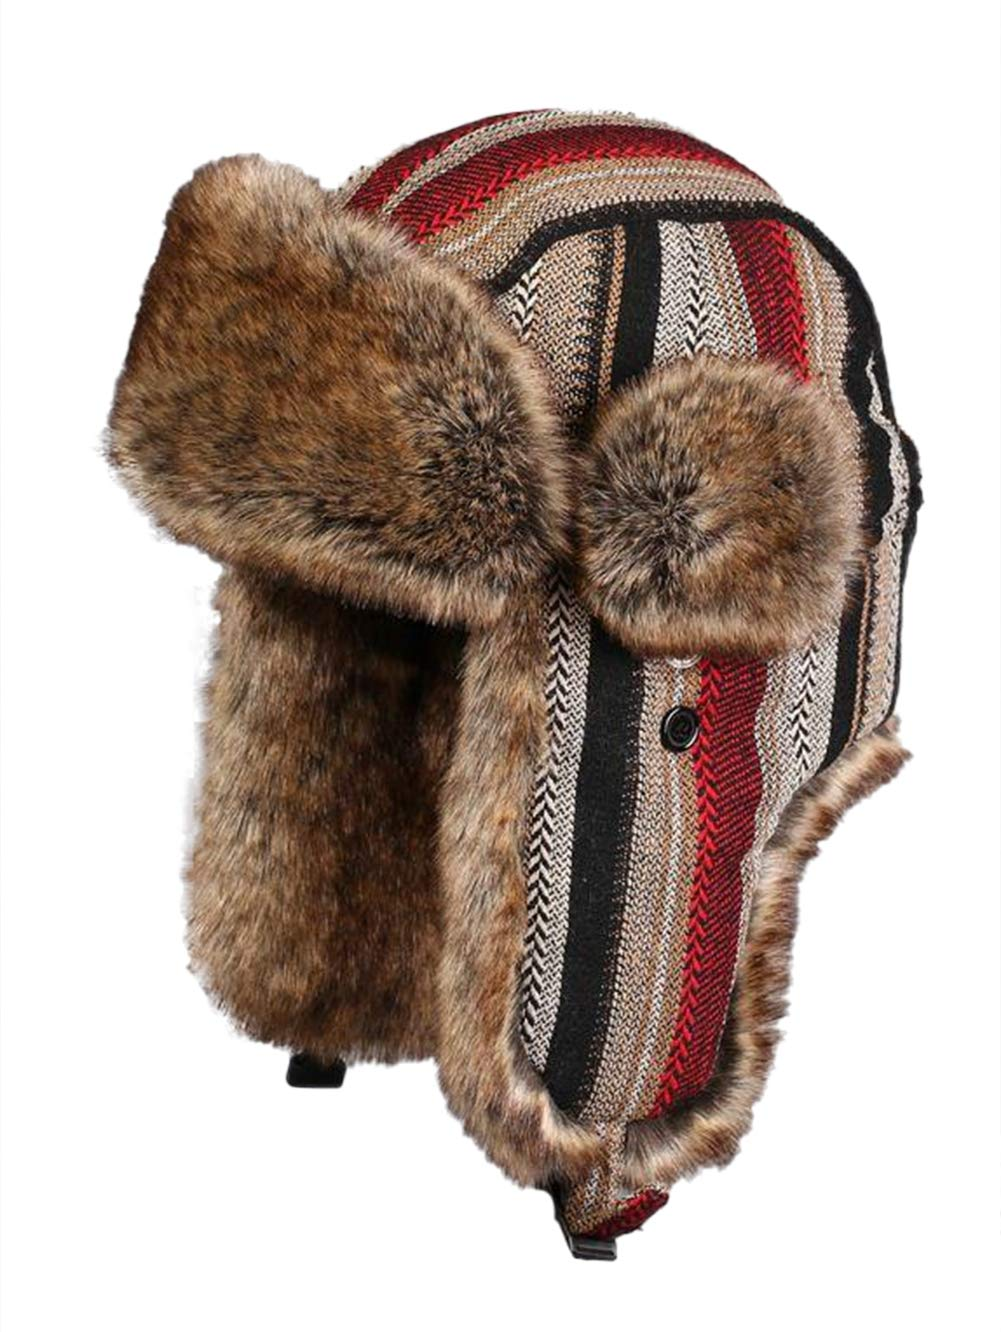 ONCEFIRST Unisex Winter Ski Aviator Hats Pilot Hunting Trapper Caps Stripe Red Khaki S